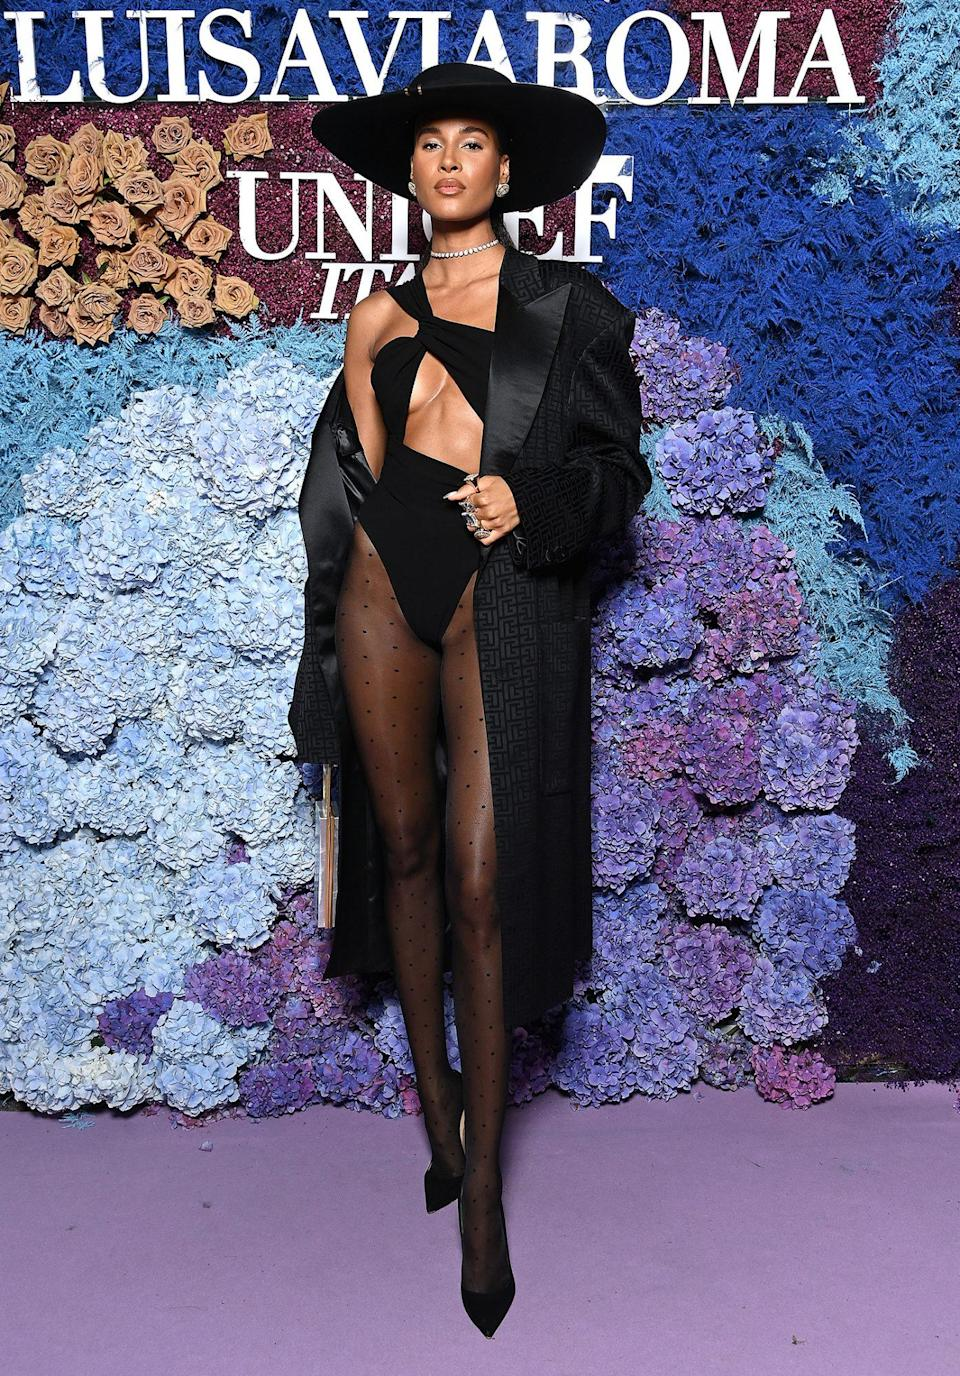 <p>teams a black cutout bodysuit with sheer tights, black tuxedo jacket, wide-brim hat and Christian Louboutin heels.</p>